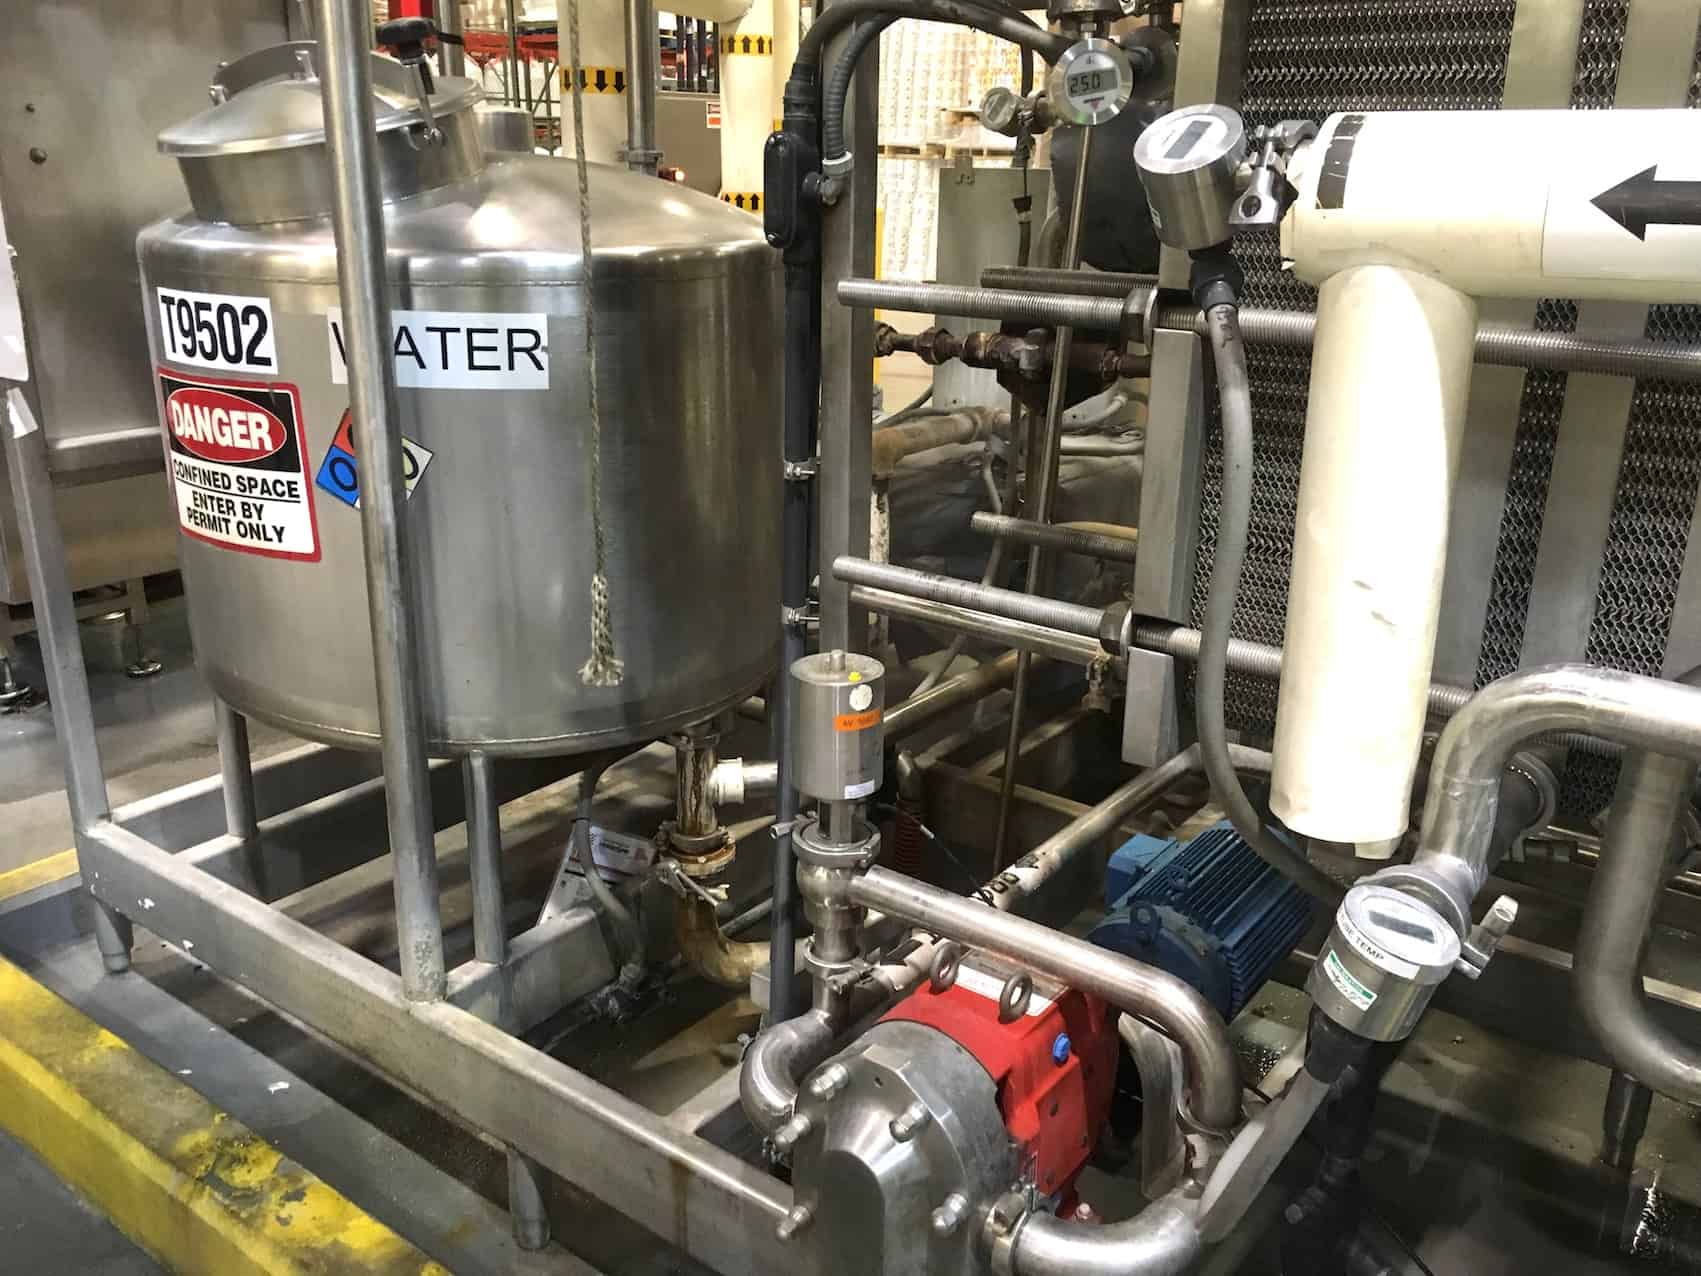 Skid Mounted HTST Pasteurization System for Hot Fill, Setup for Juice at 25 gallons per minute at 200F, 460 Volt 3 Phase 60Hz, Water 40 PSIG, Air 80 PSIG, Steam PSIG, Includes APV Multi-section Plate Heat Exchanger for Heating-Cooling-Regeneration, Holding Tube for Pasteurization, Control and Steam Valves, Fristam High Pressure Pumps, Anderson Chart Recorder, (2) Stainless Steel Buffer Tanks, Last in operation November 2017 (Located in North Carolina) ***FBEV***